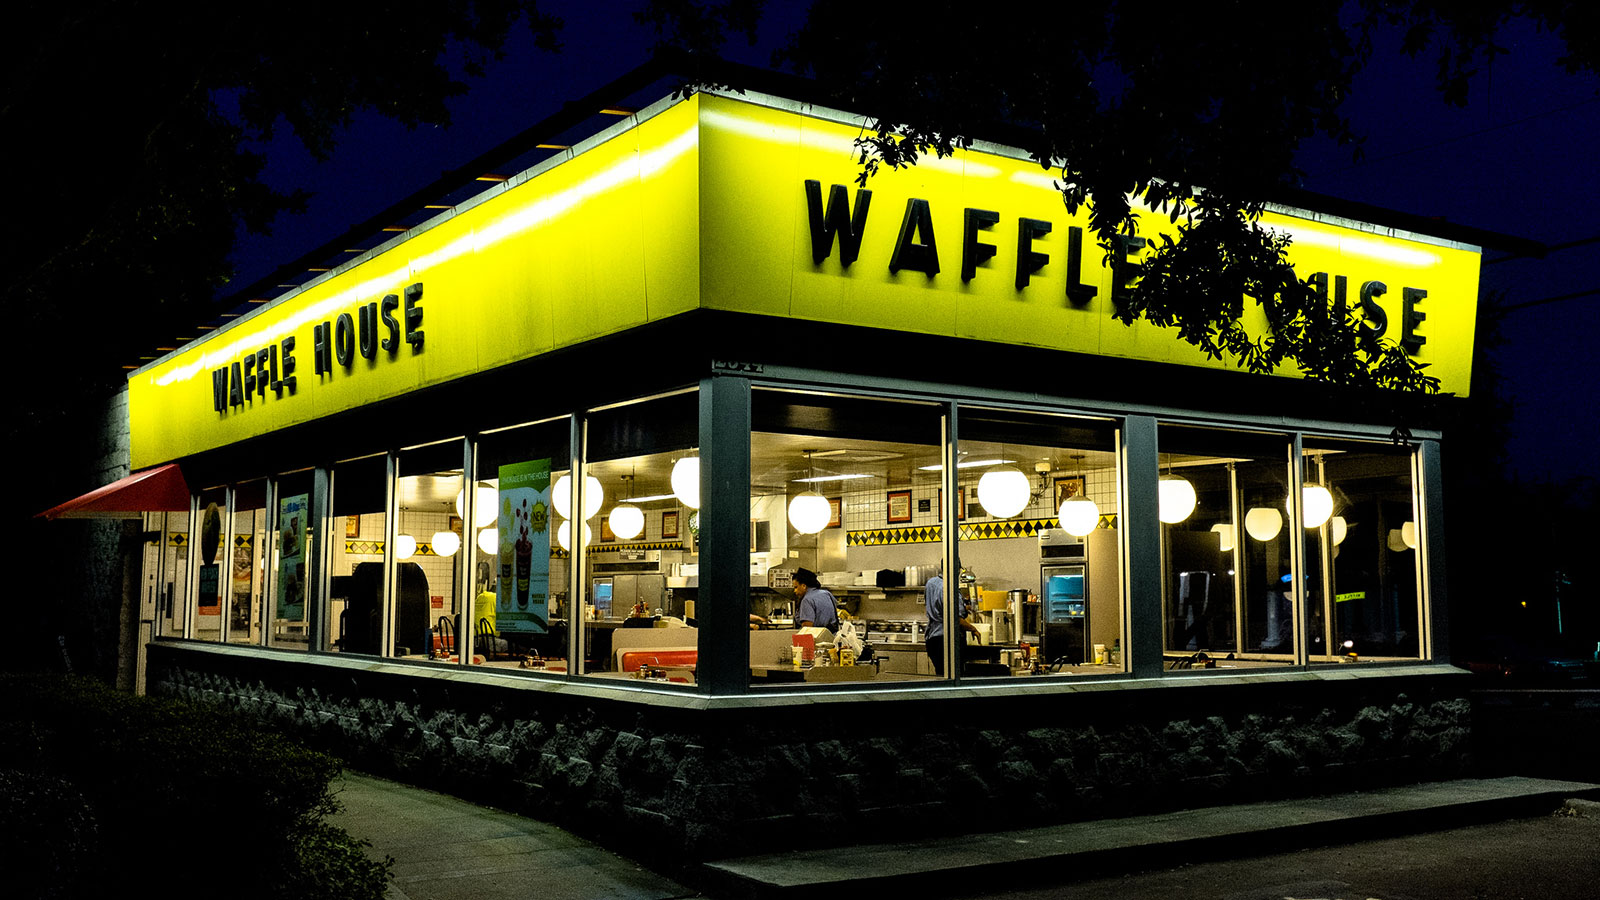 Don't Waffle On This: Take the Waffle House Quiz